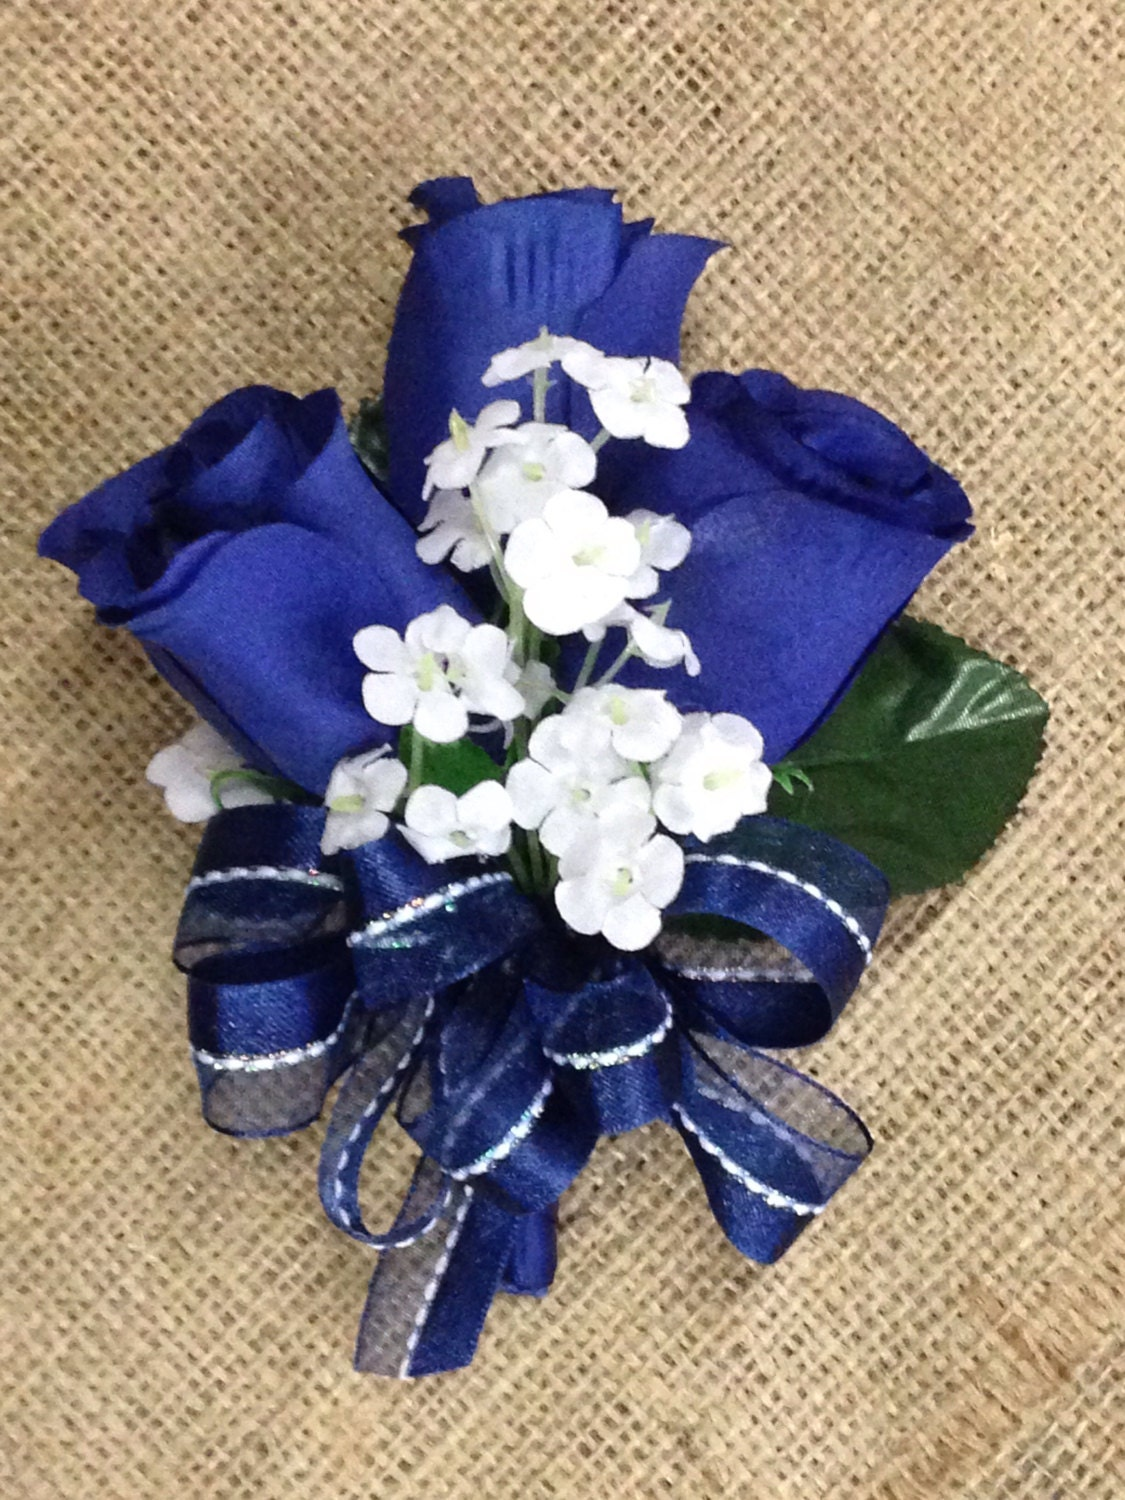 New artificial navy rose corsage blue rose mothers corsage navy new artificial navy rose corsage blue rose mothers corsage navy boutonniere navy bout navy prom corsage izmirmasajfo Gallery